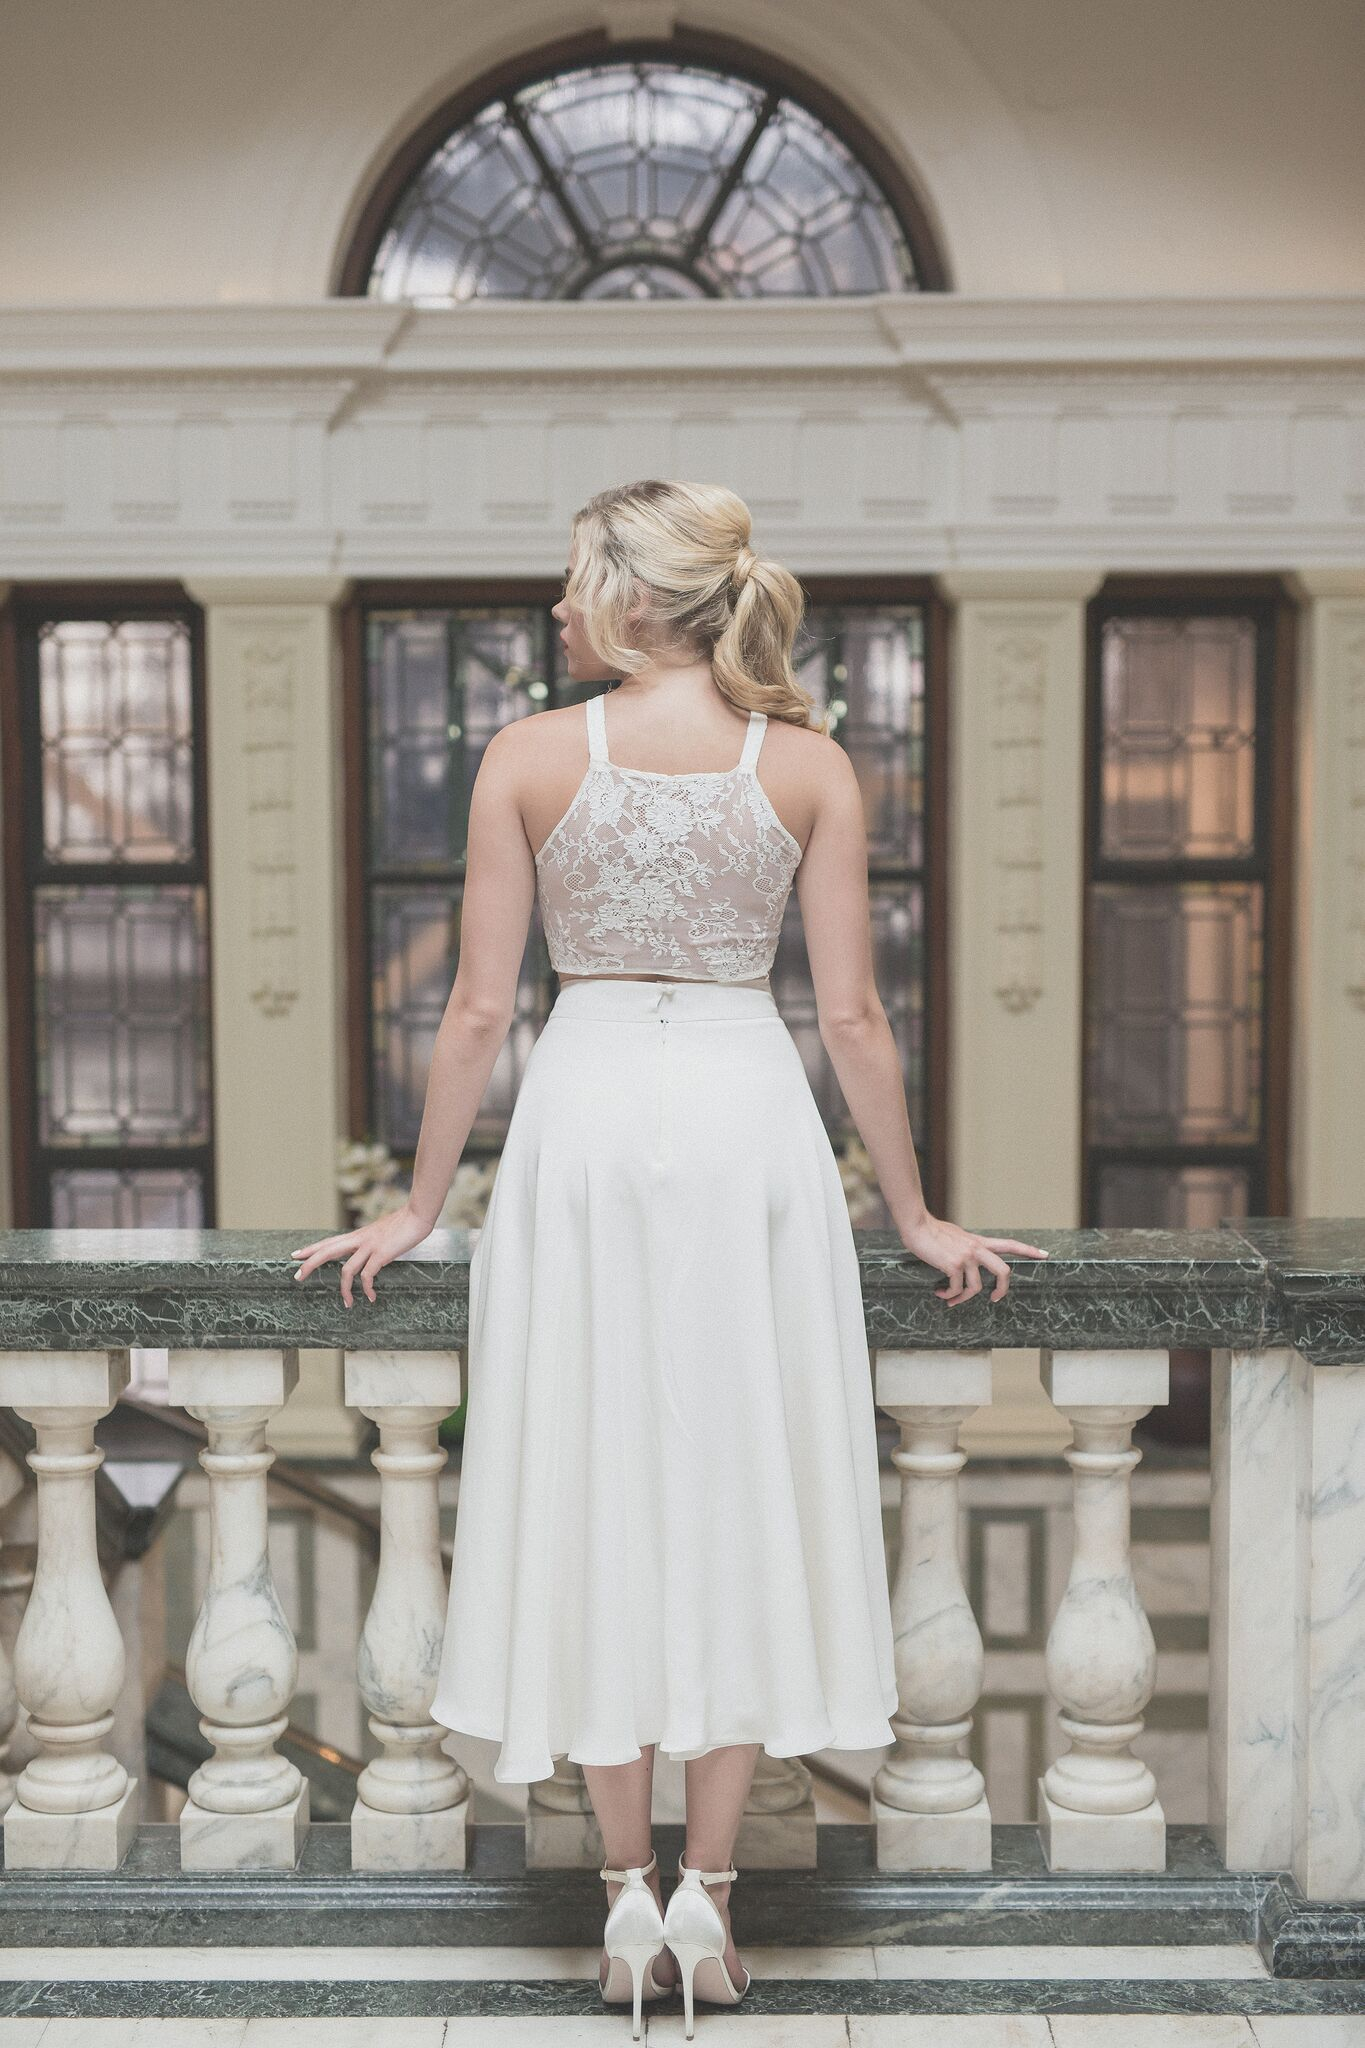 Ditch the traditional wedding dress for your registry for Dresses for registry office wedding